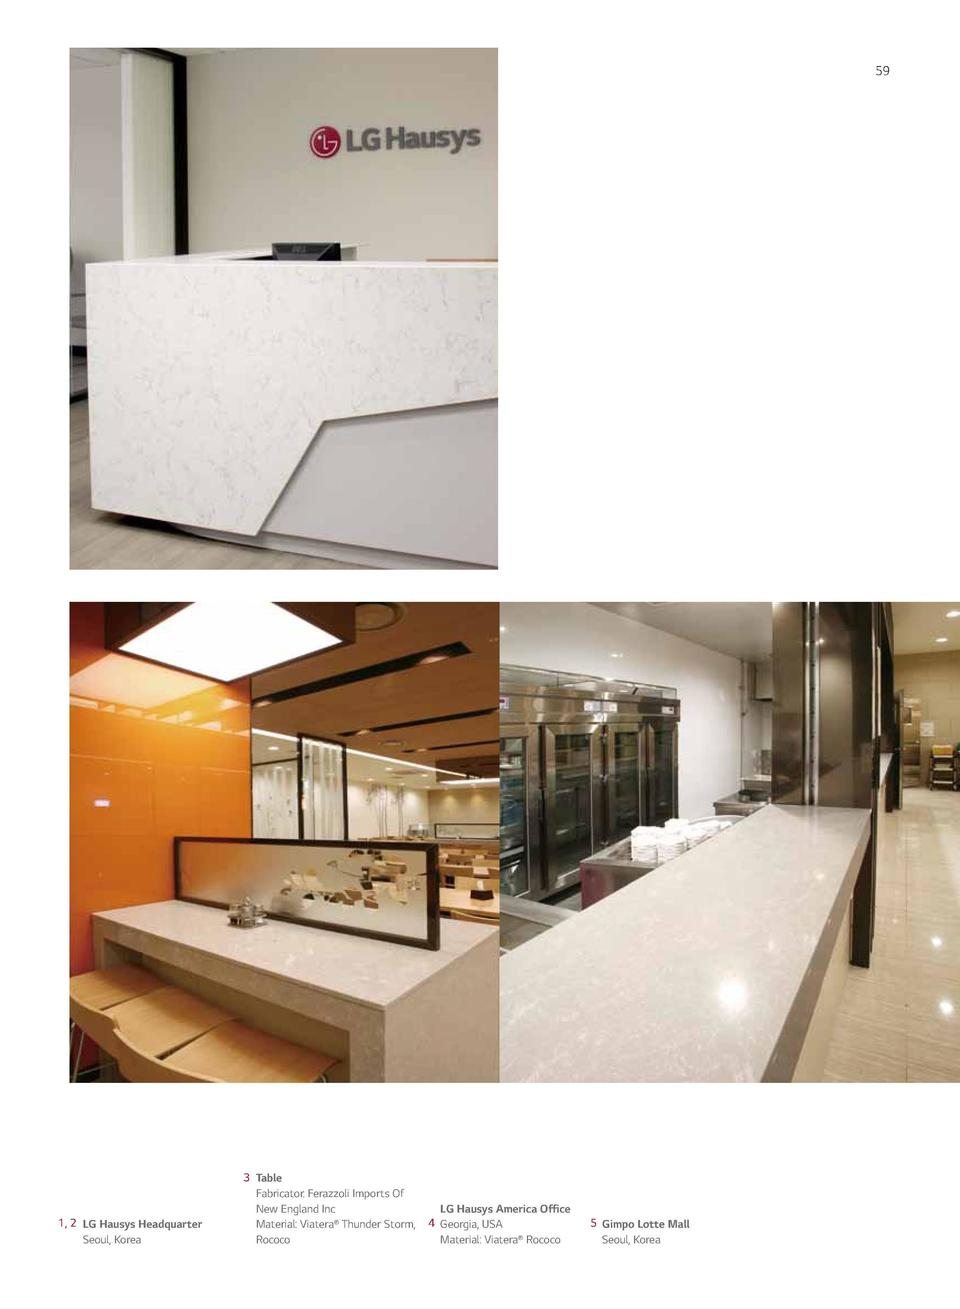 58  59  1  OFFICES   CATERING  2  4  3  5  1, 2 LG Hausys Headquarter Seoul, Korea  3 Table Fabricator  Ferazzoli Imports ...